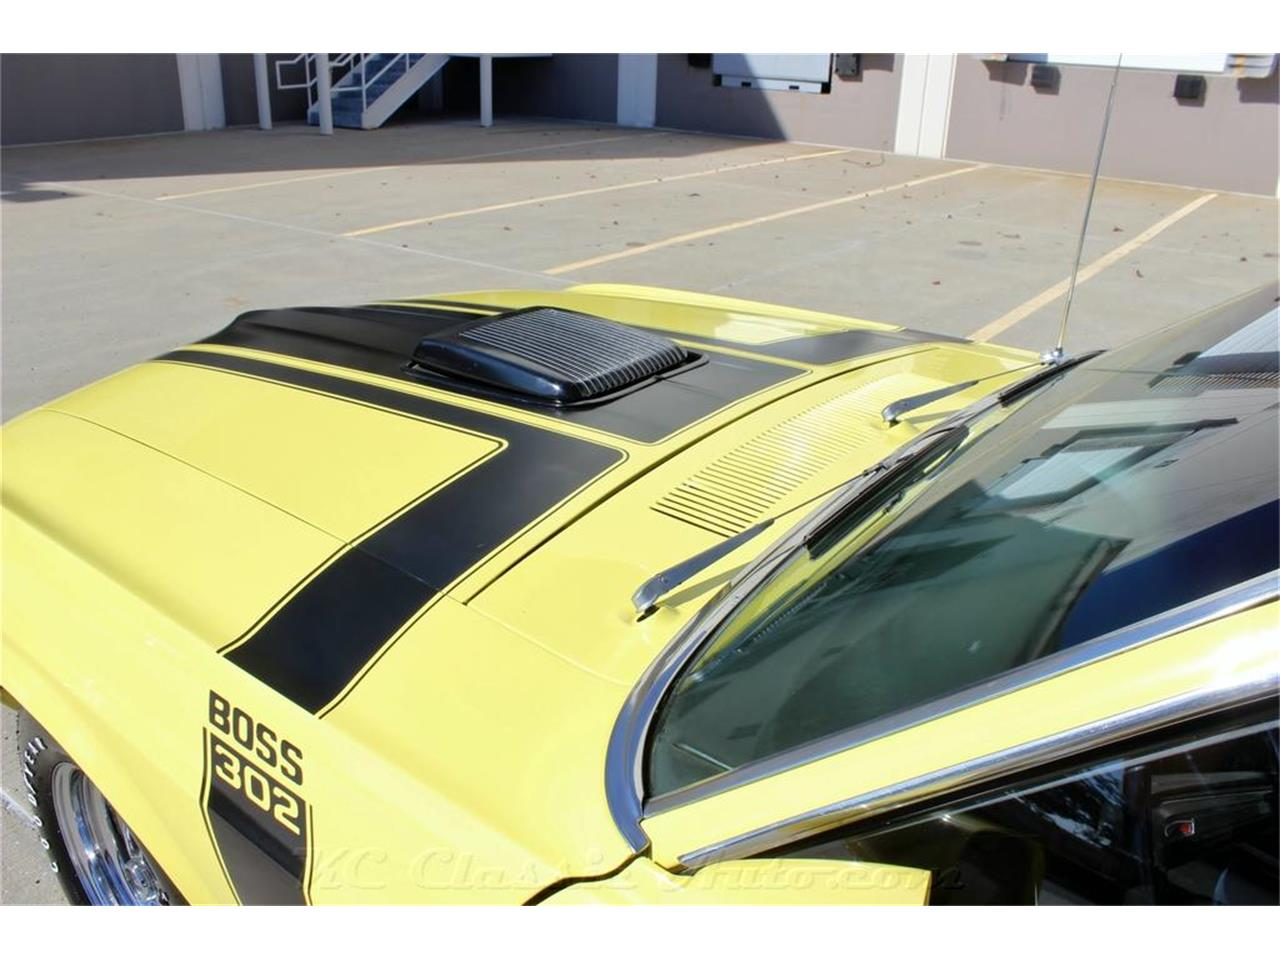 Large Picture of '70 Ford Mustang Boss 302 located in Kansas - $69,900.00 Offered by KC Classic Auto - M7FD